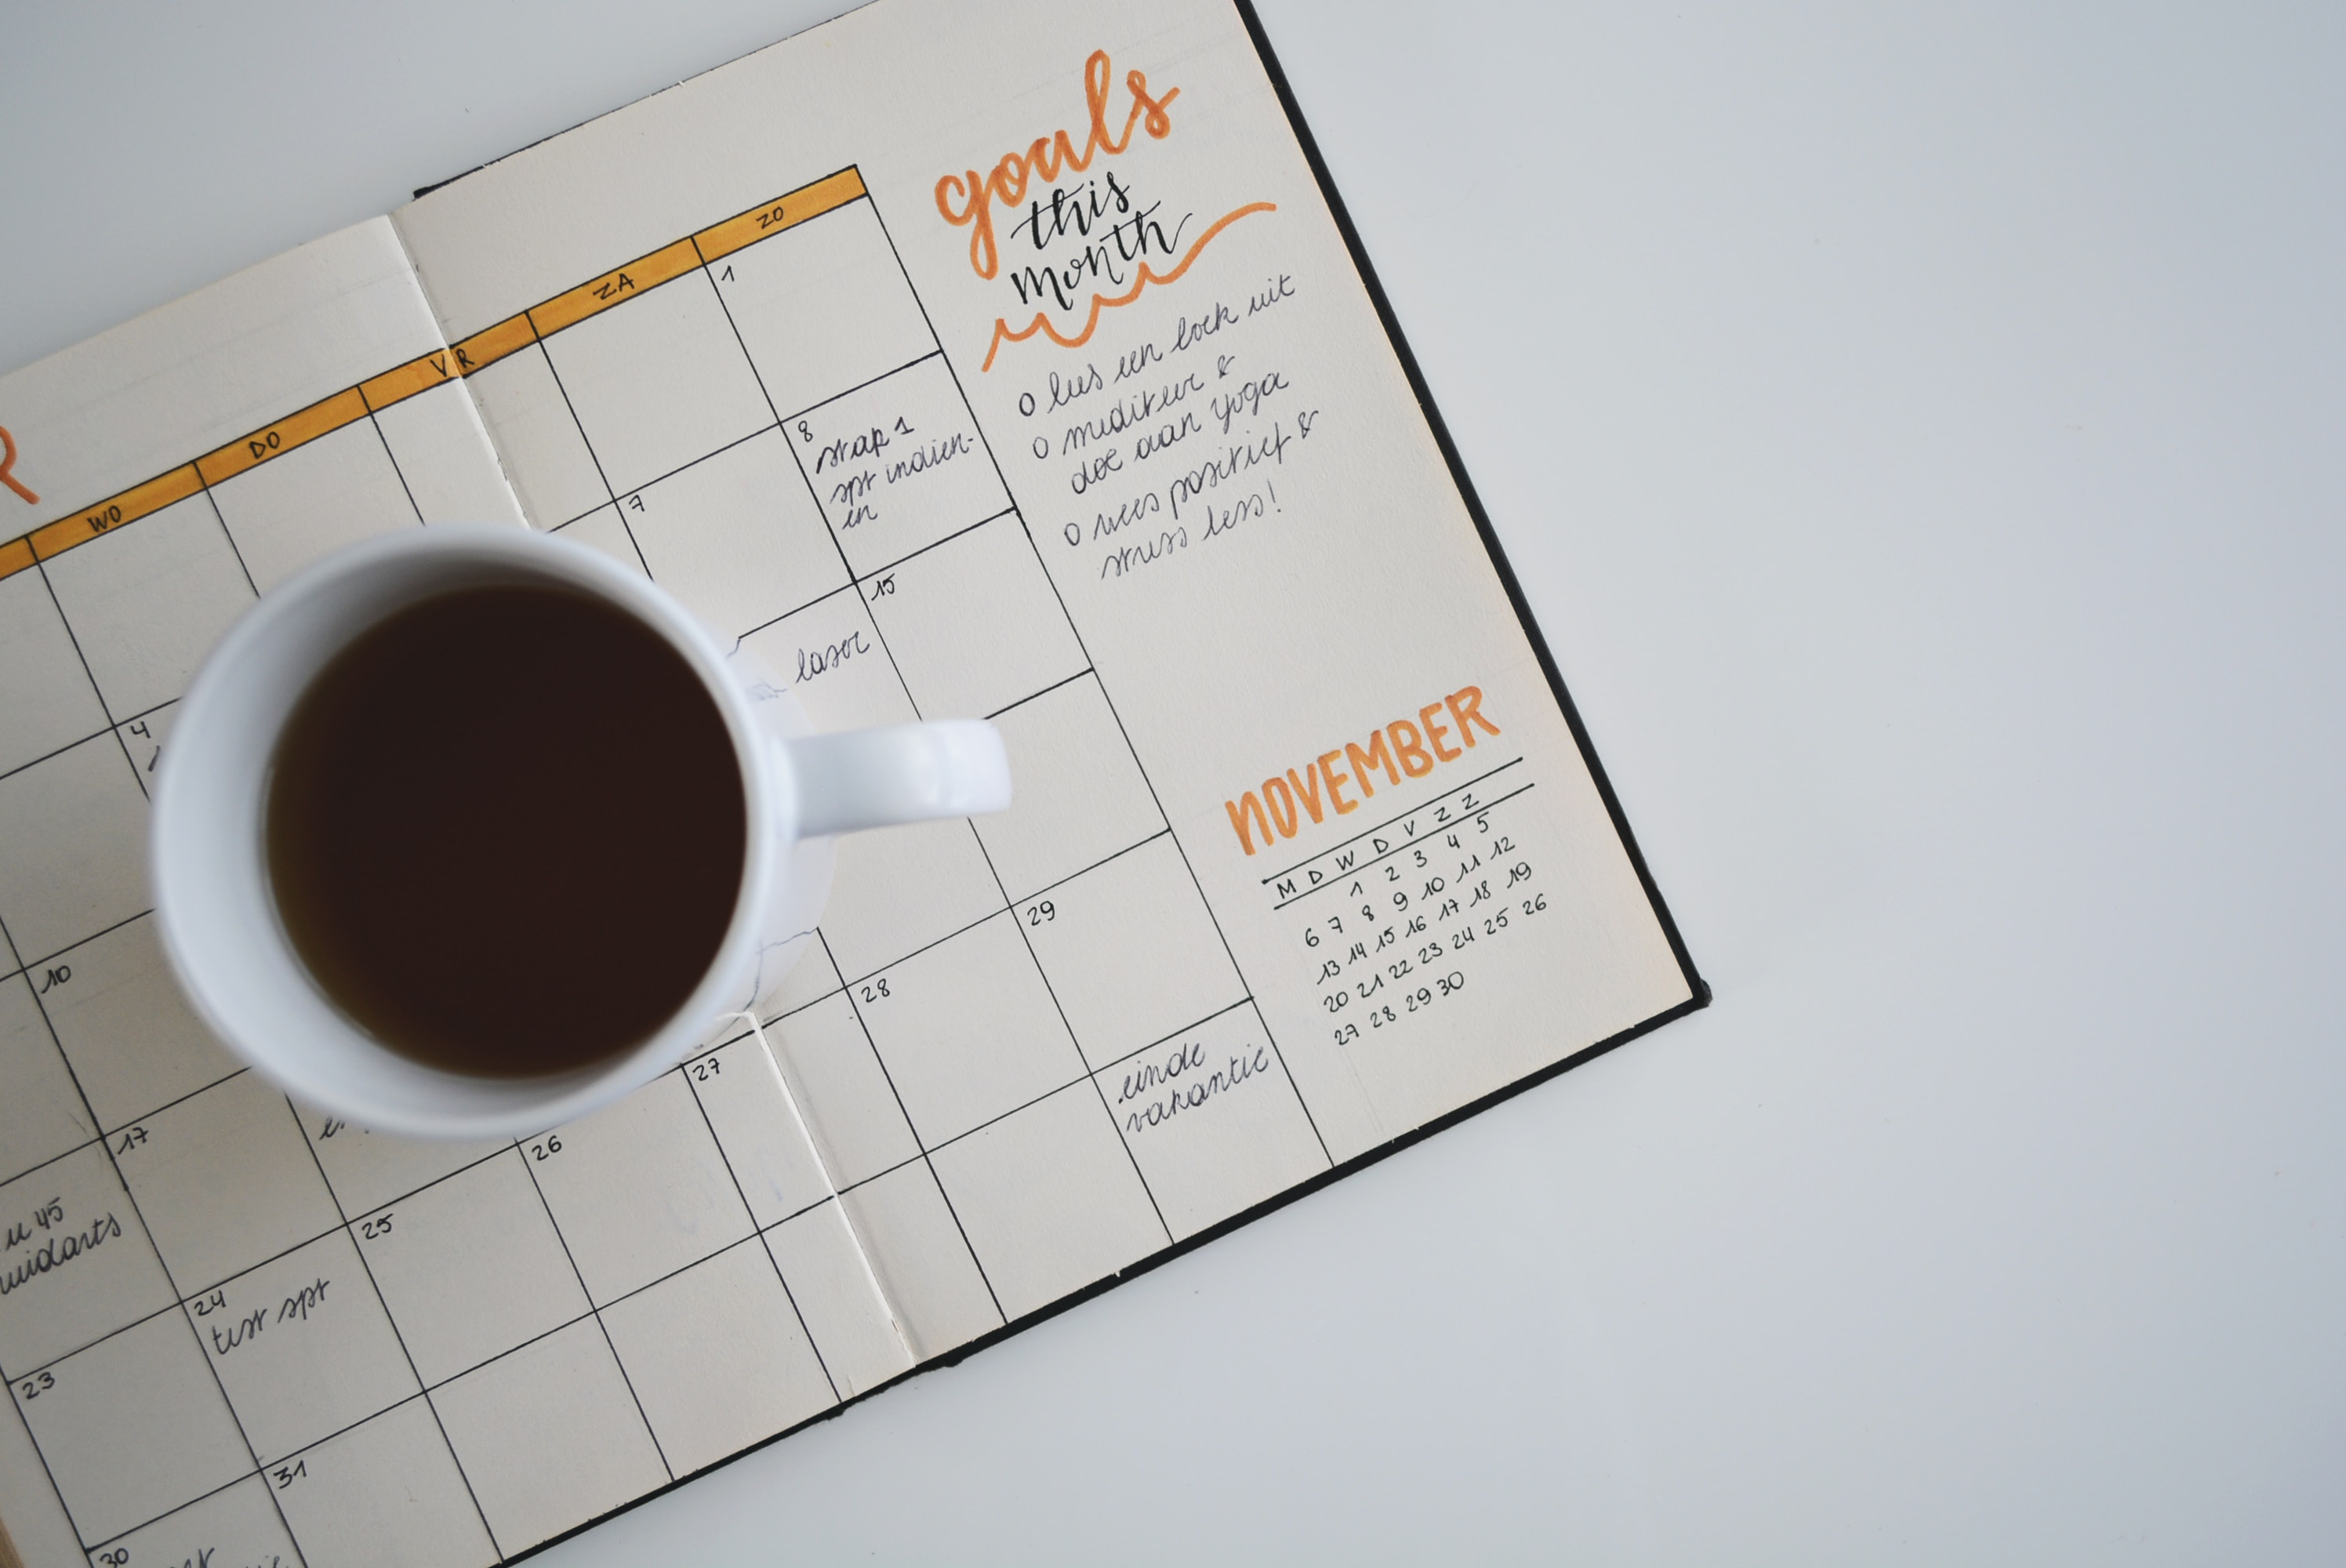 personal calendar open, there is a coffee mug over it